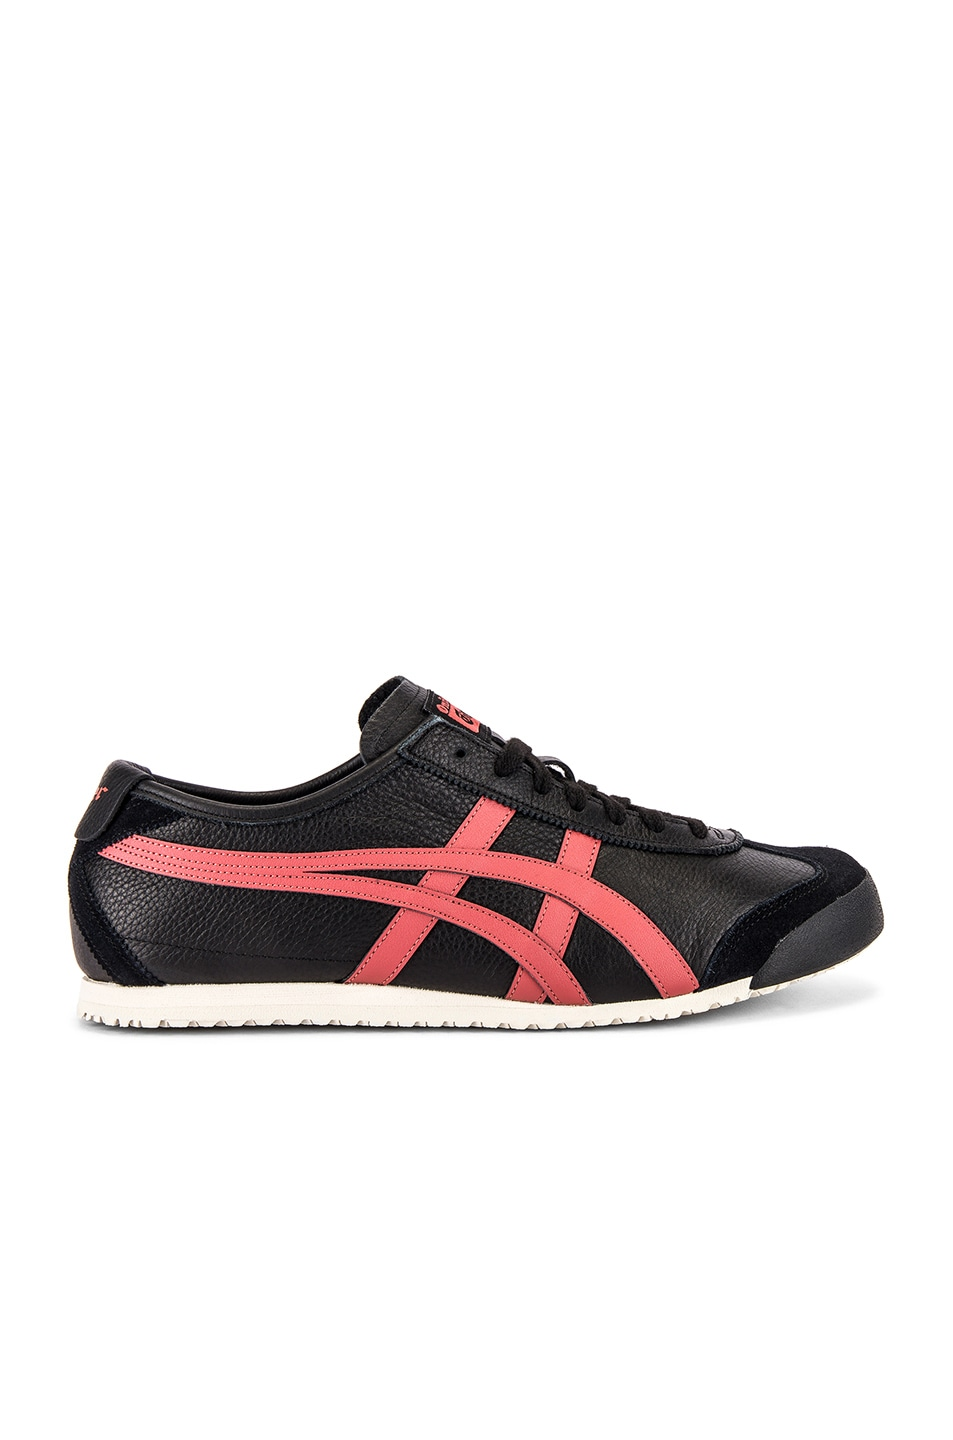 Image 2 of Onitsuka Tiger Mexico 66 in Black & Burnt Red